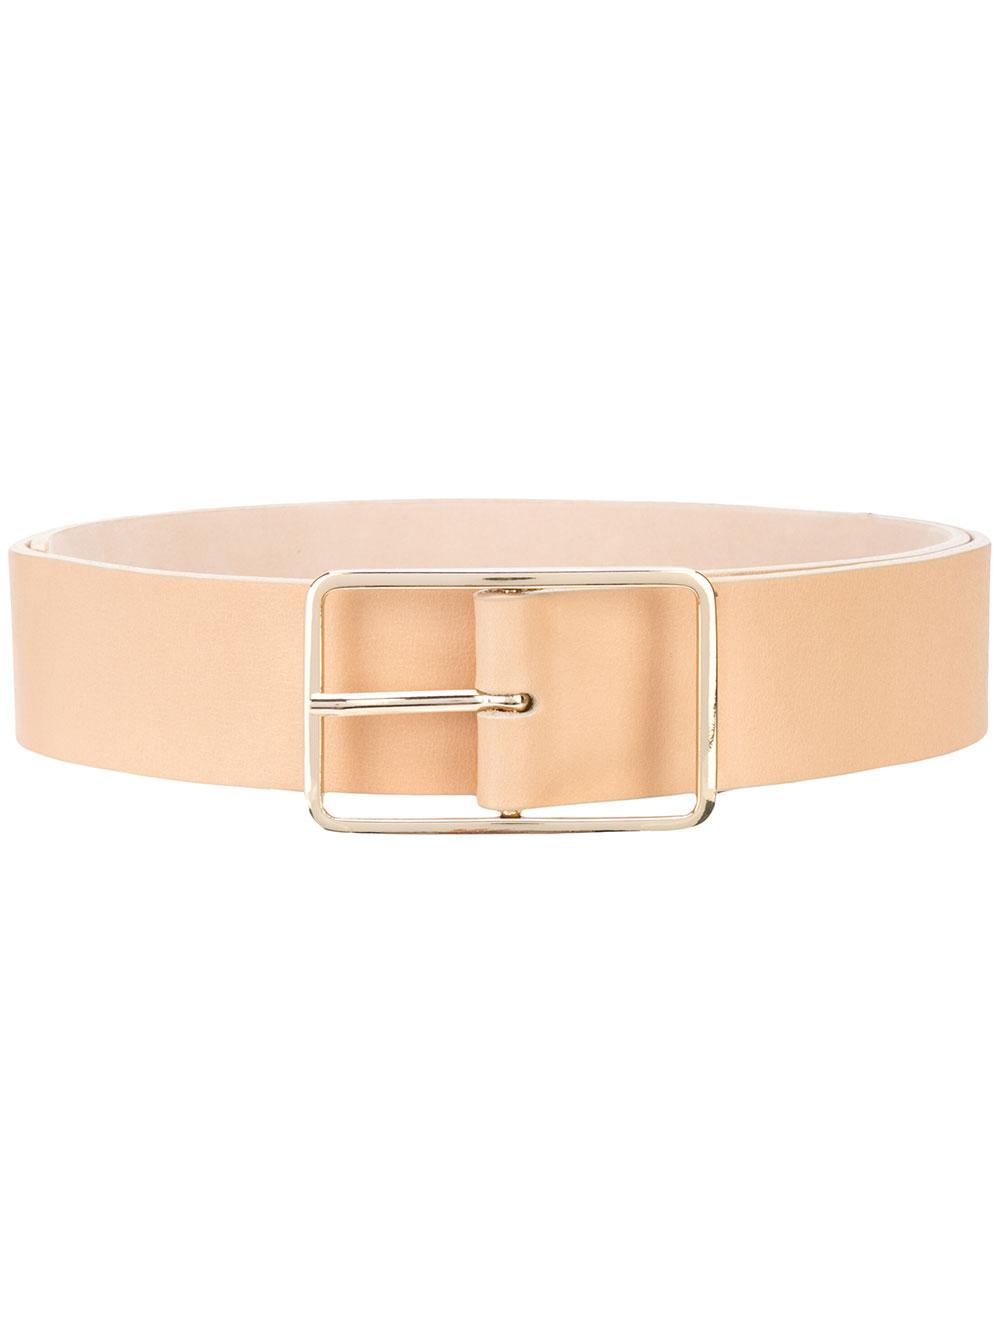 Mill Asmooth Rectangle Buckle Item # BT1640-F19